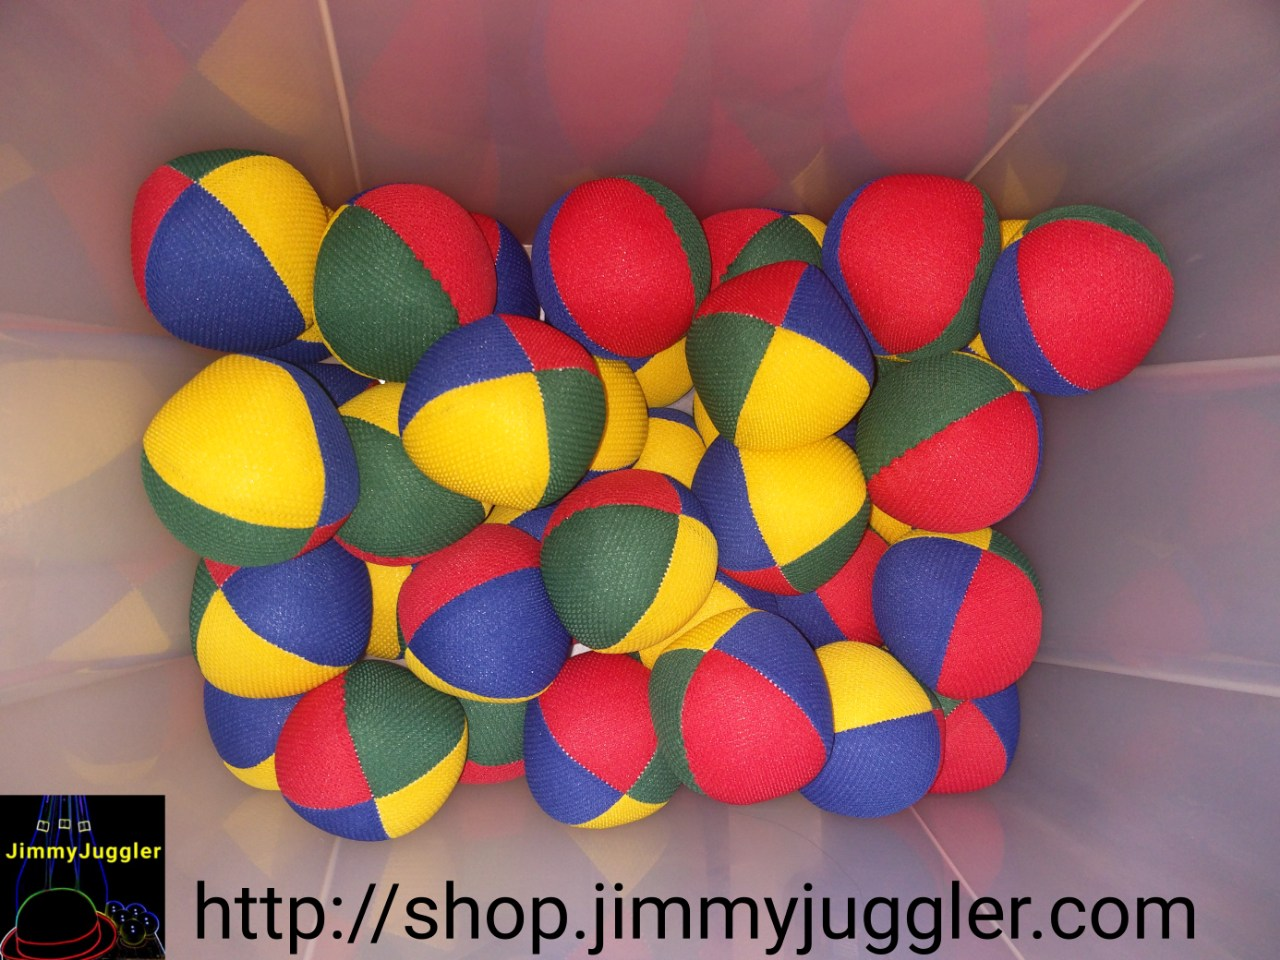 Buy real Juggling Balls for jugglers in Singapore | Juggling Shop